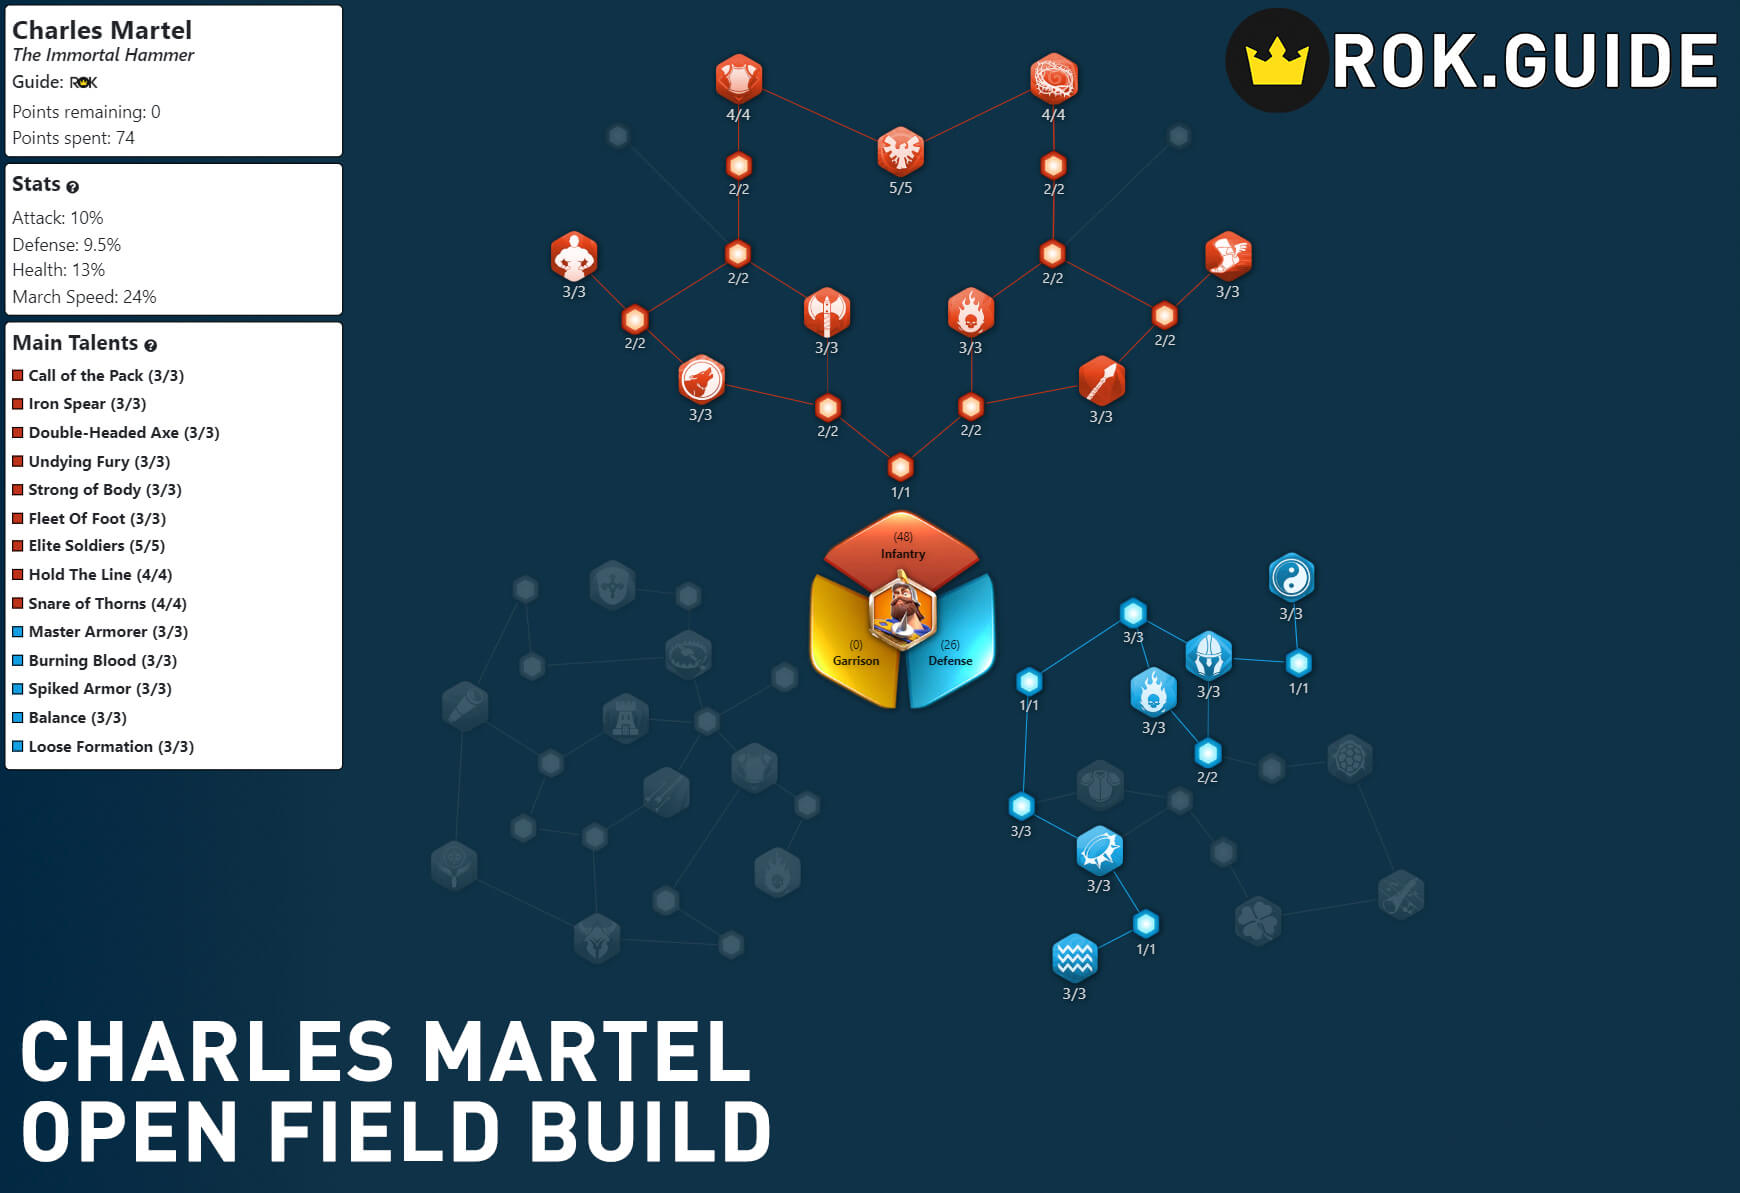 charles martel openfield build